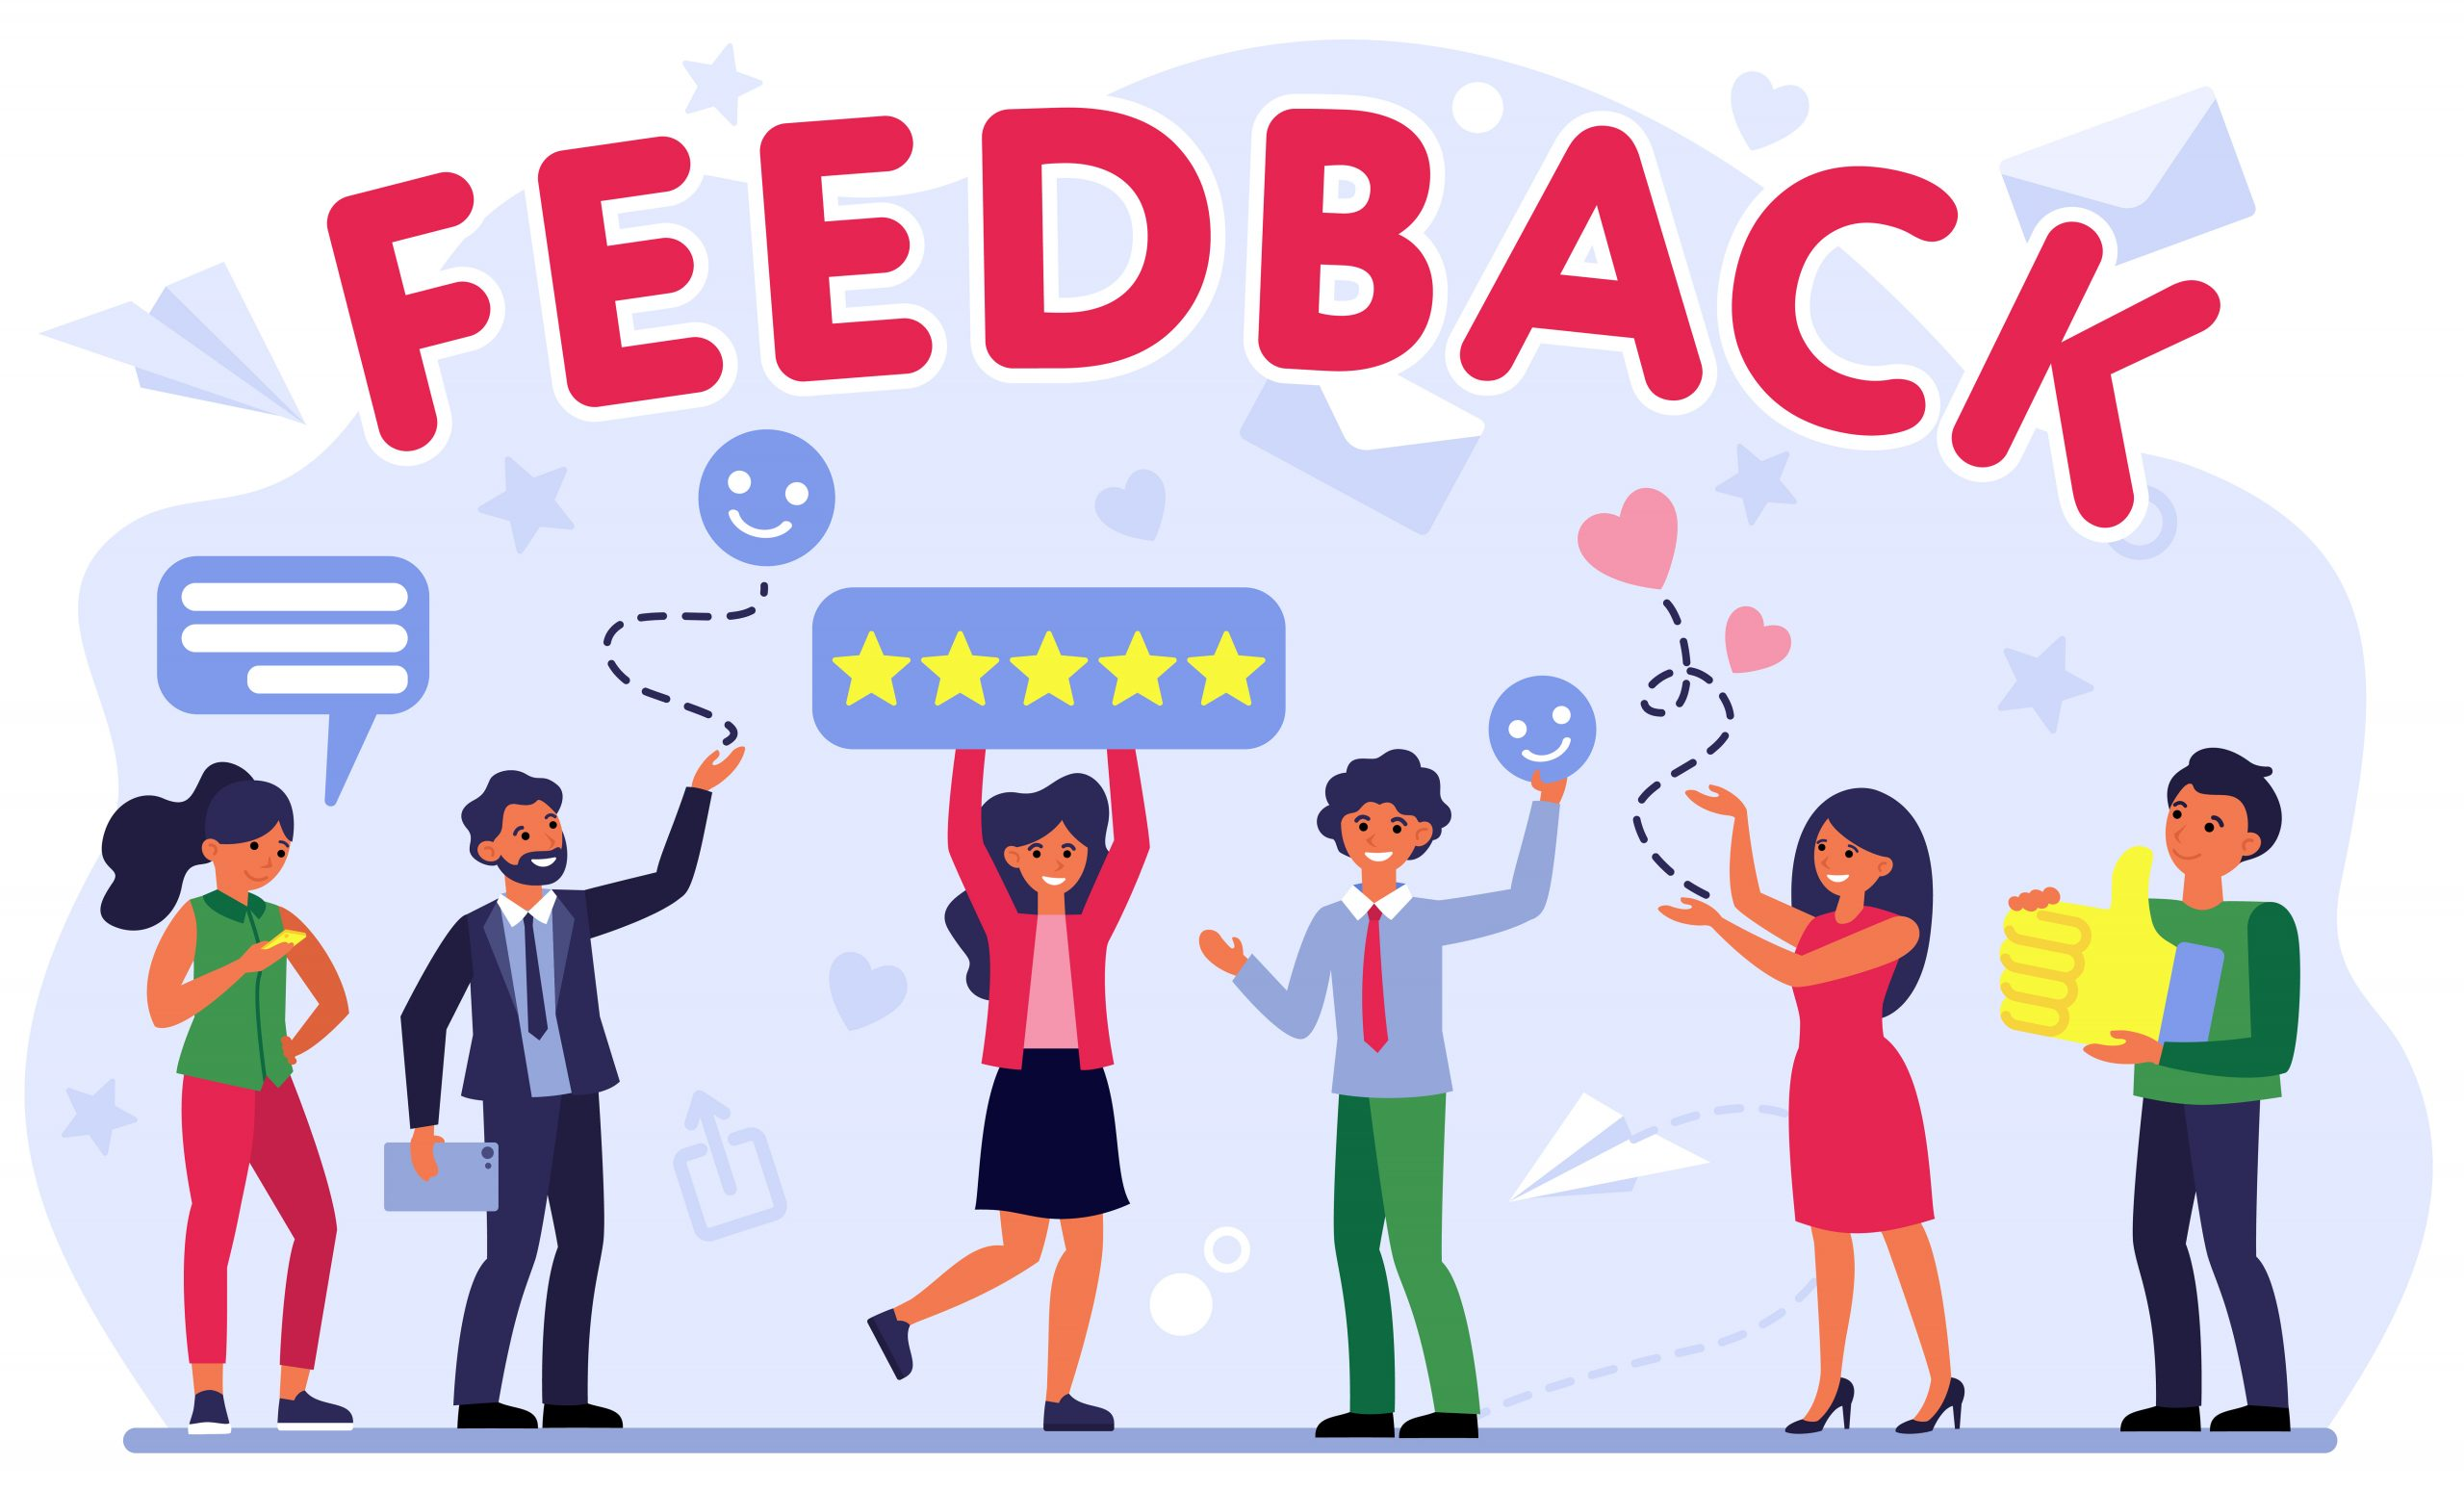 Customer feedback assessment flat vector illustration. Smiling people voting and giving comments to CRM. Reviews and advices concept